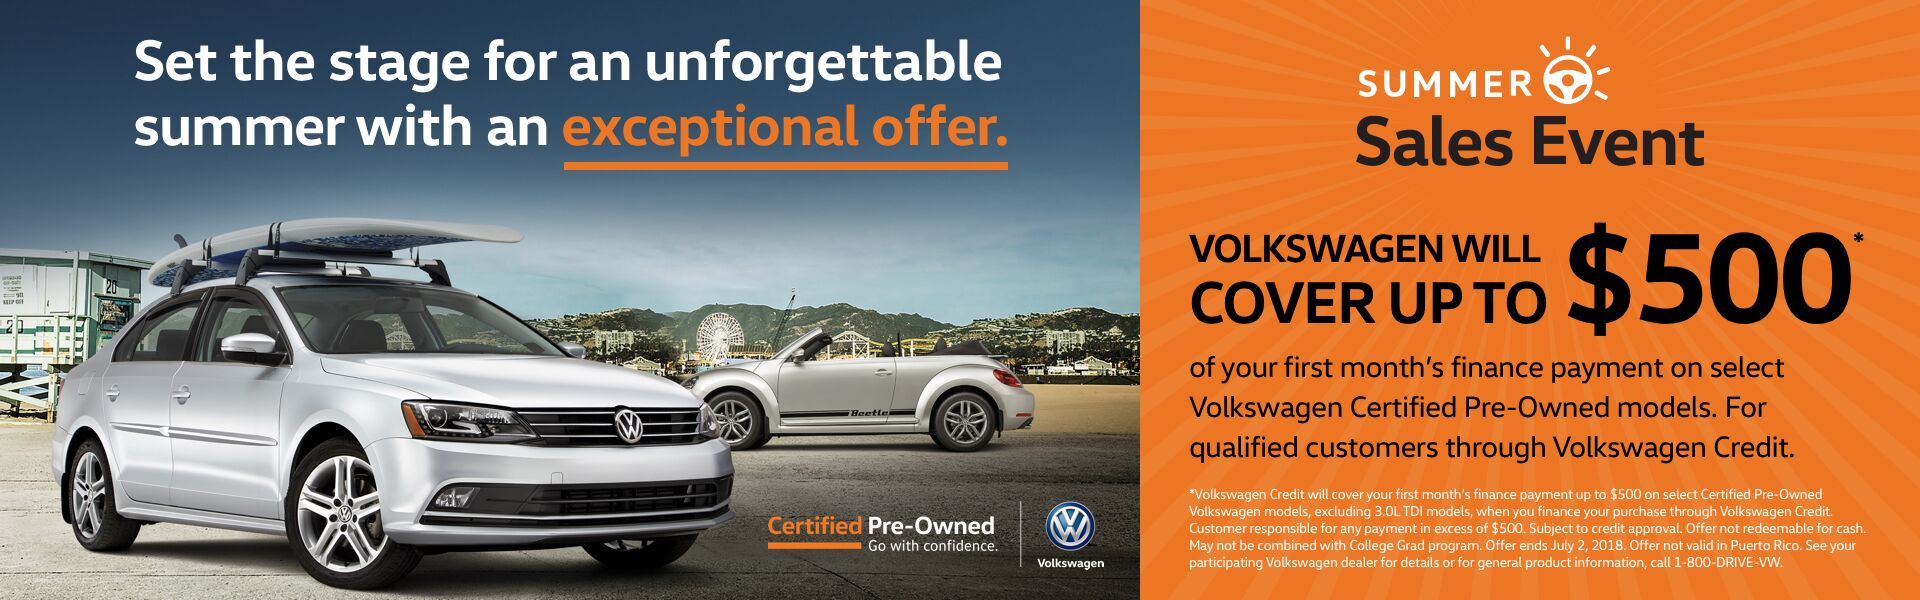 Certified Pre-Owned Used Volkswagen for sale in El Paso, Texas